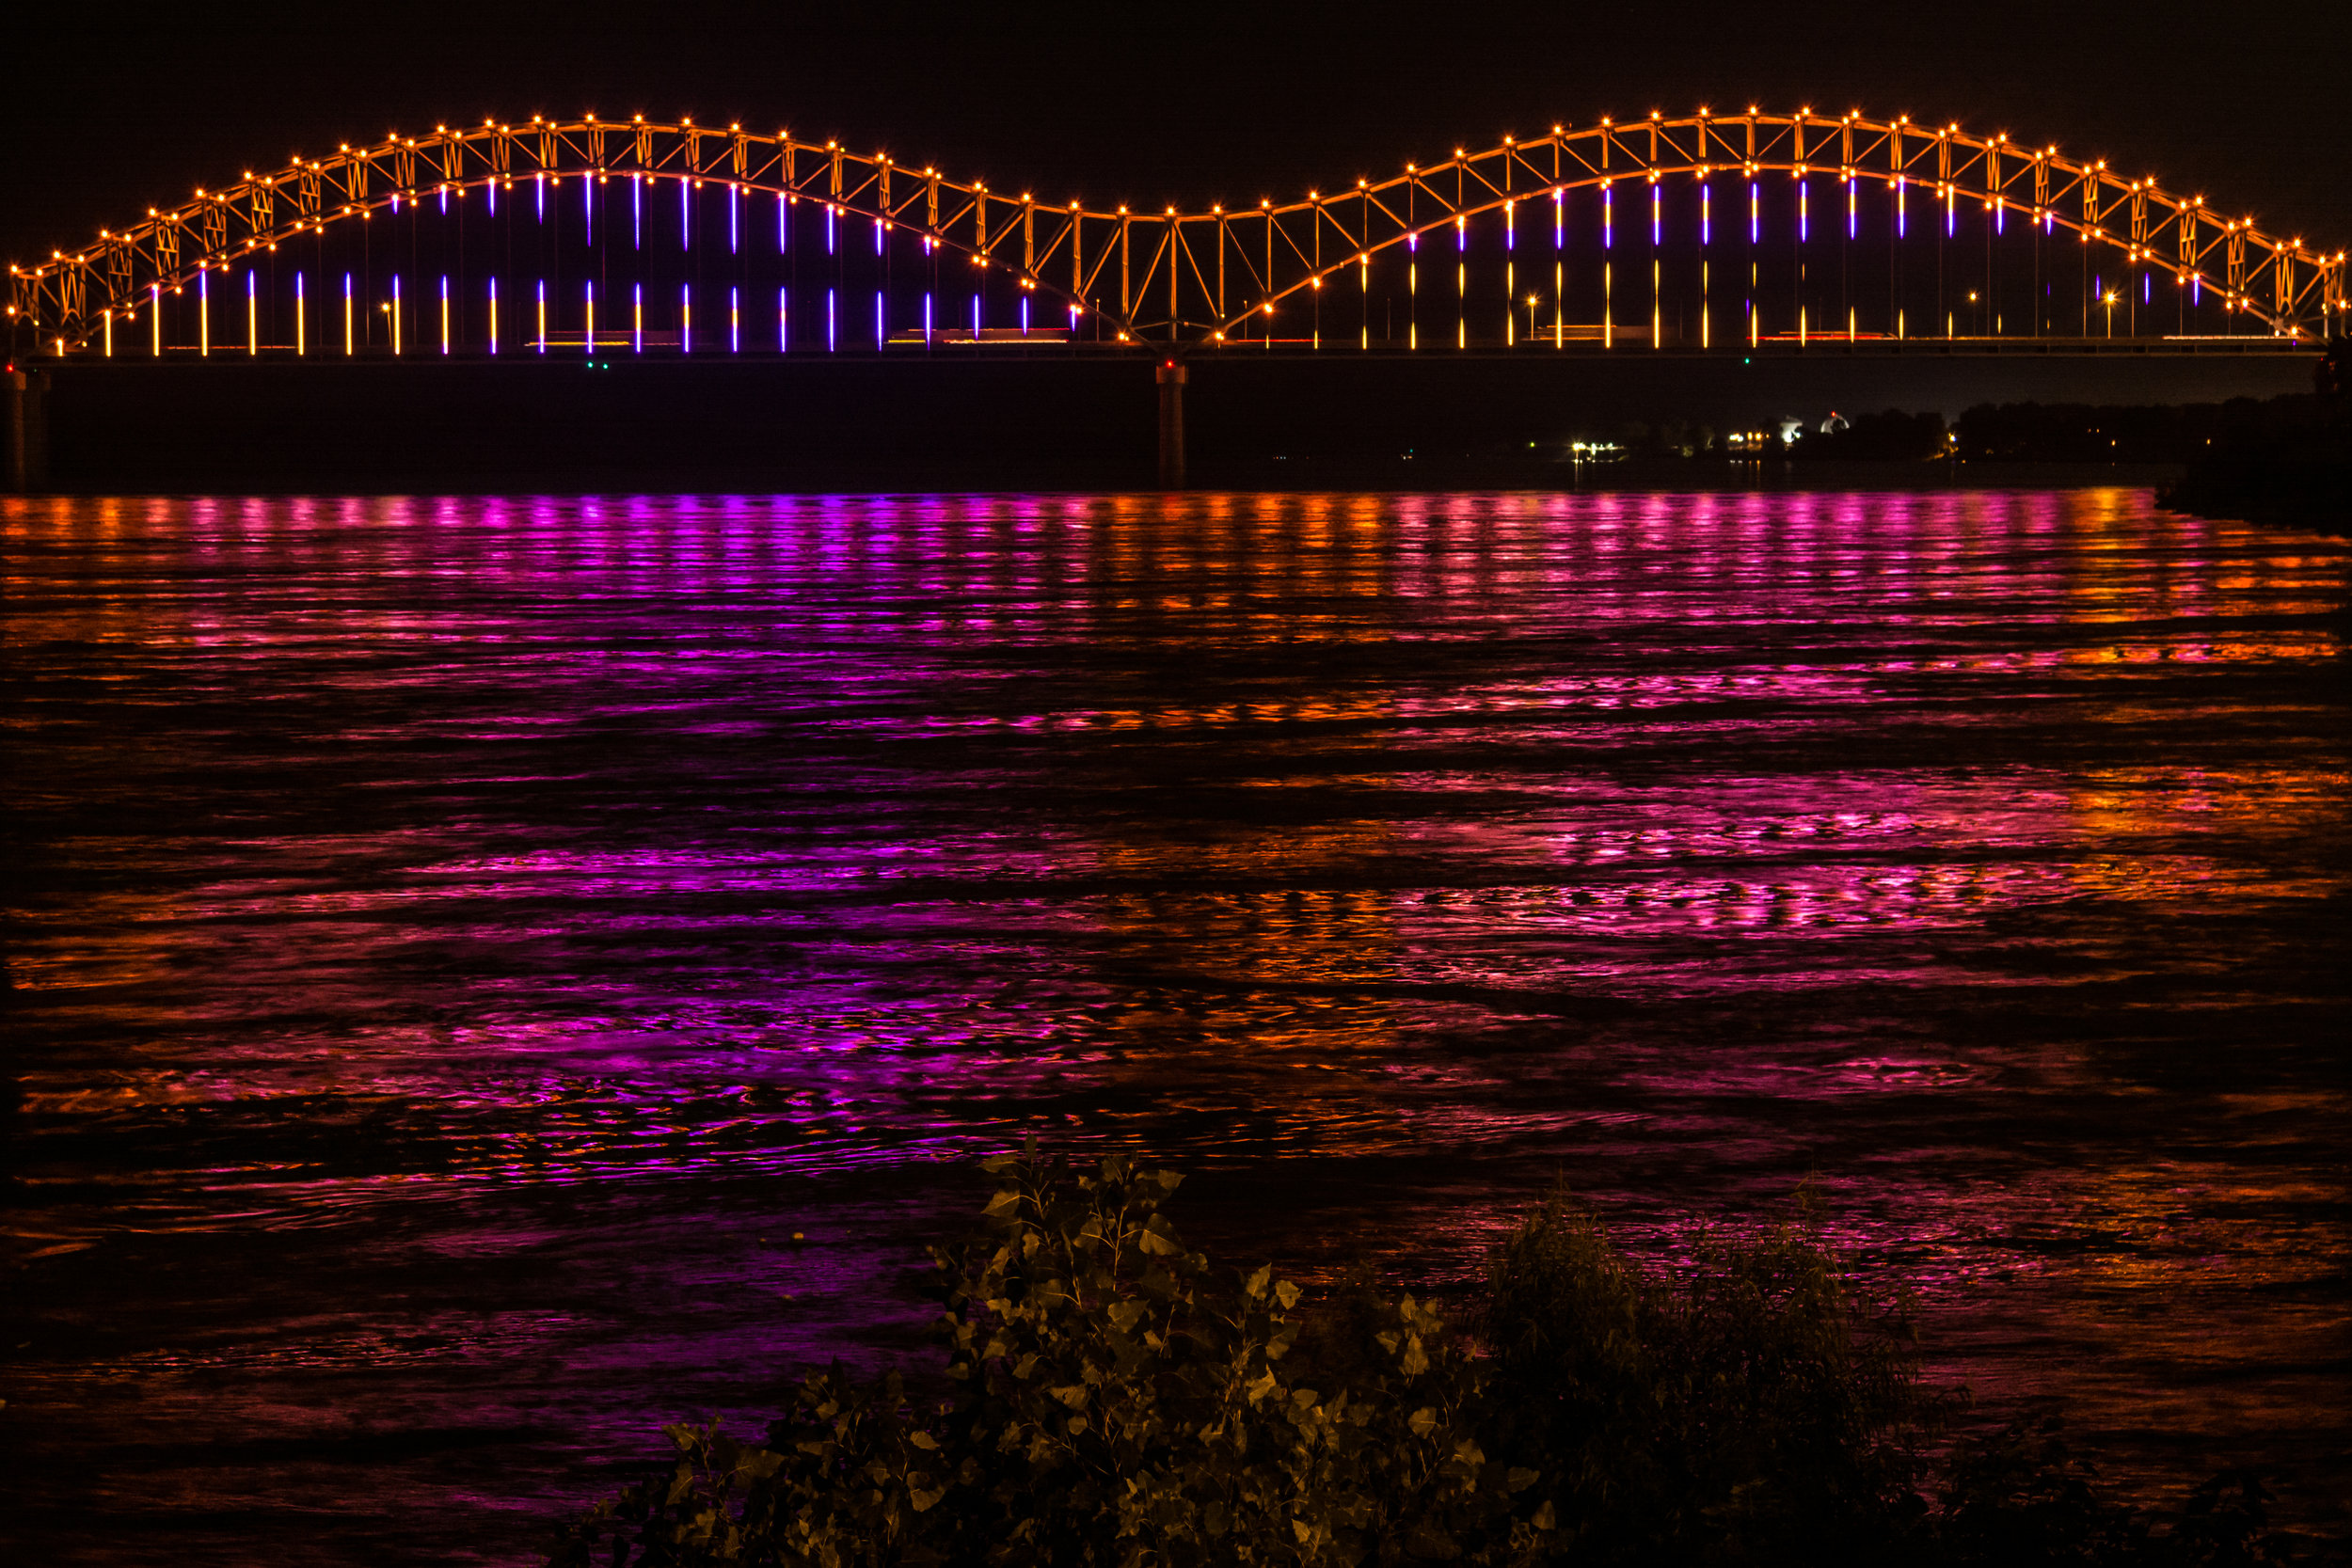 "Because of its massive size and scope - the ""M"" bridge surface area equals other robust Philips Lighting installations such as San Francisco's Bay Bridge.The lights can introduce millions of colors and pattern designs. They are synchronized and coordinated to achieve dramatic effects. The lights on Big River Crossing have introduced physical connectivity between Downtown Memphis and Arkansas, and the enhanced Hernando de Soto bridge lights visually connect Memphis' mile-long riverfront. (The lights are directed outward from the roadways, however, so drivers on the de Soto Bridge are not affected.)Memphis Bridge Lighting Inc. is committed to not only a successful lighting installation, but also a proactive sustainability effort. Mighty Lights recognizes special occasions through custom cause or corporate colors, and builds partnerships with Downtown stakeholders and institutions whose own narratives can add value and voice to our mission."